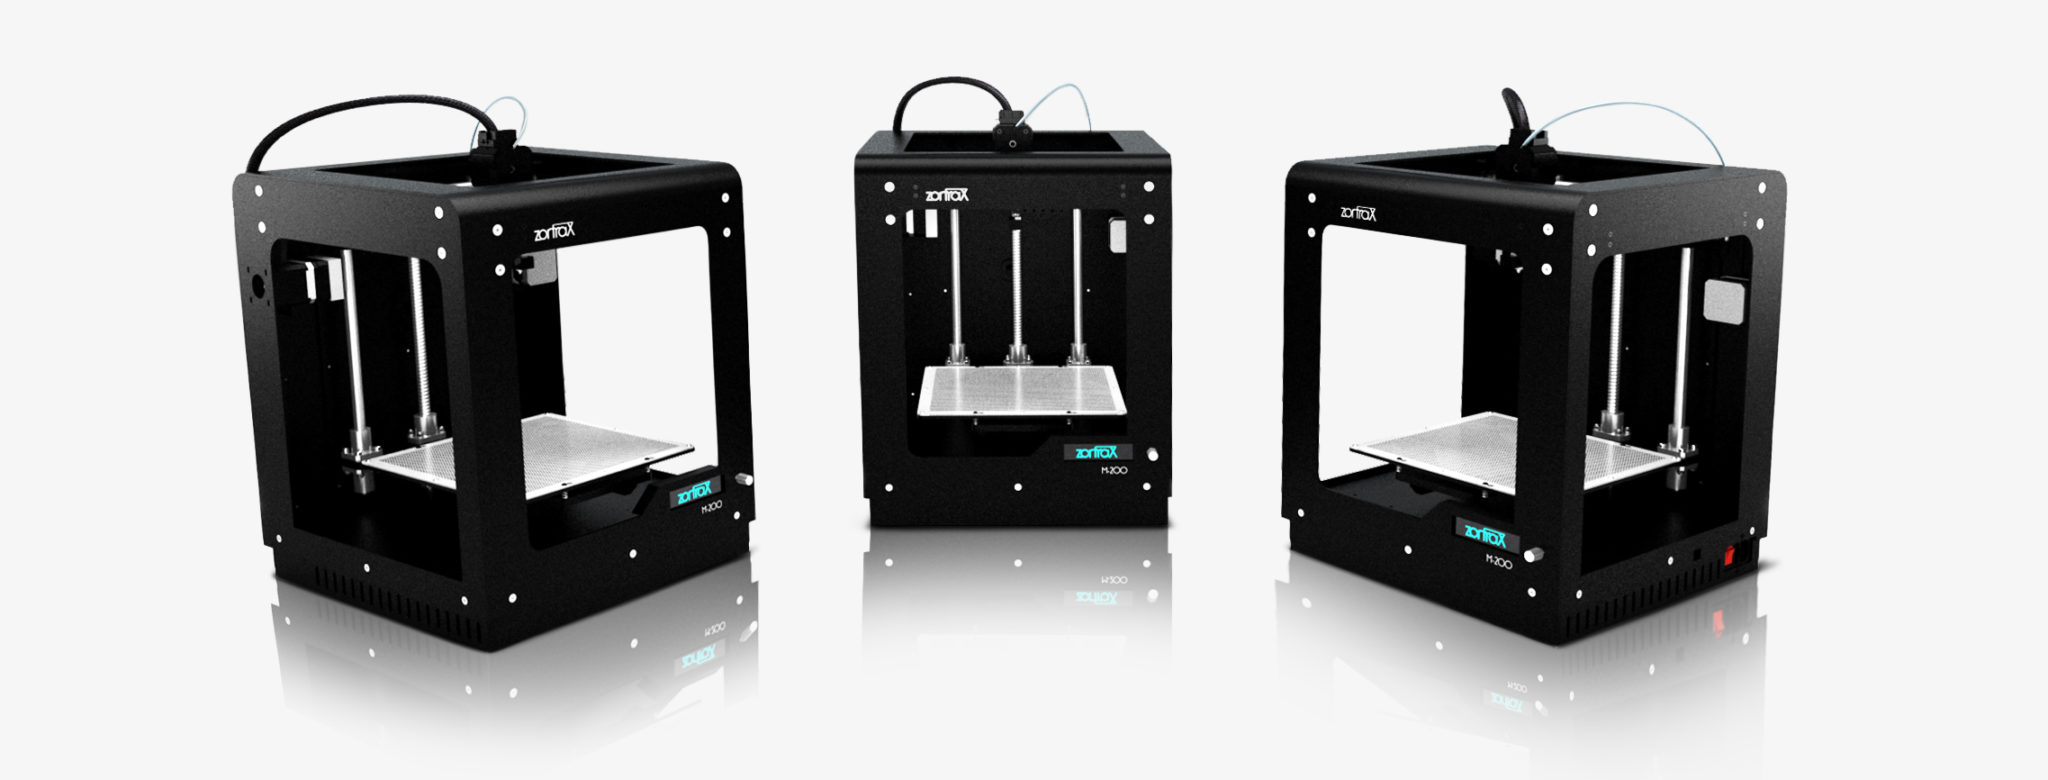 Best 3d printer review of 2017